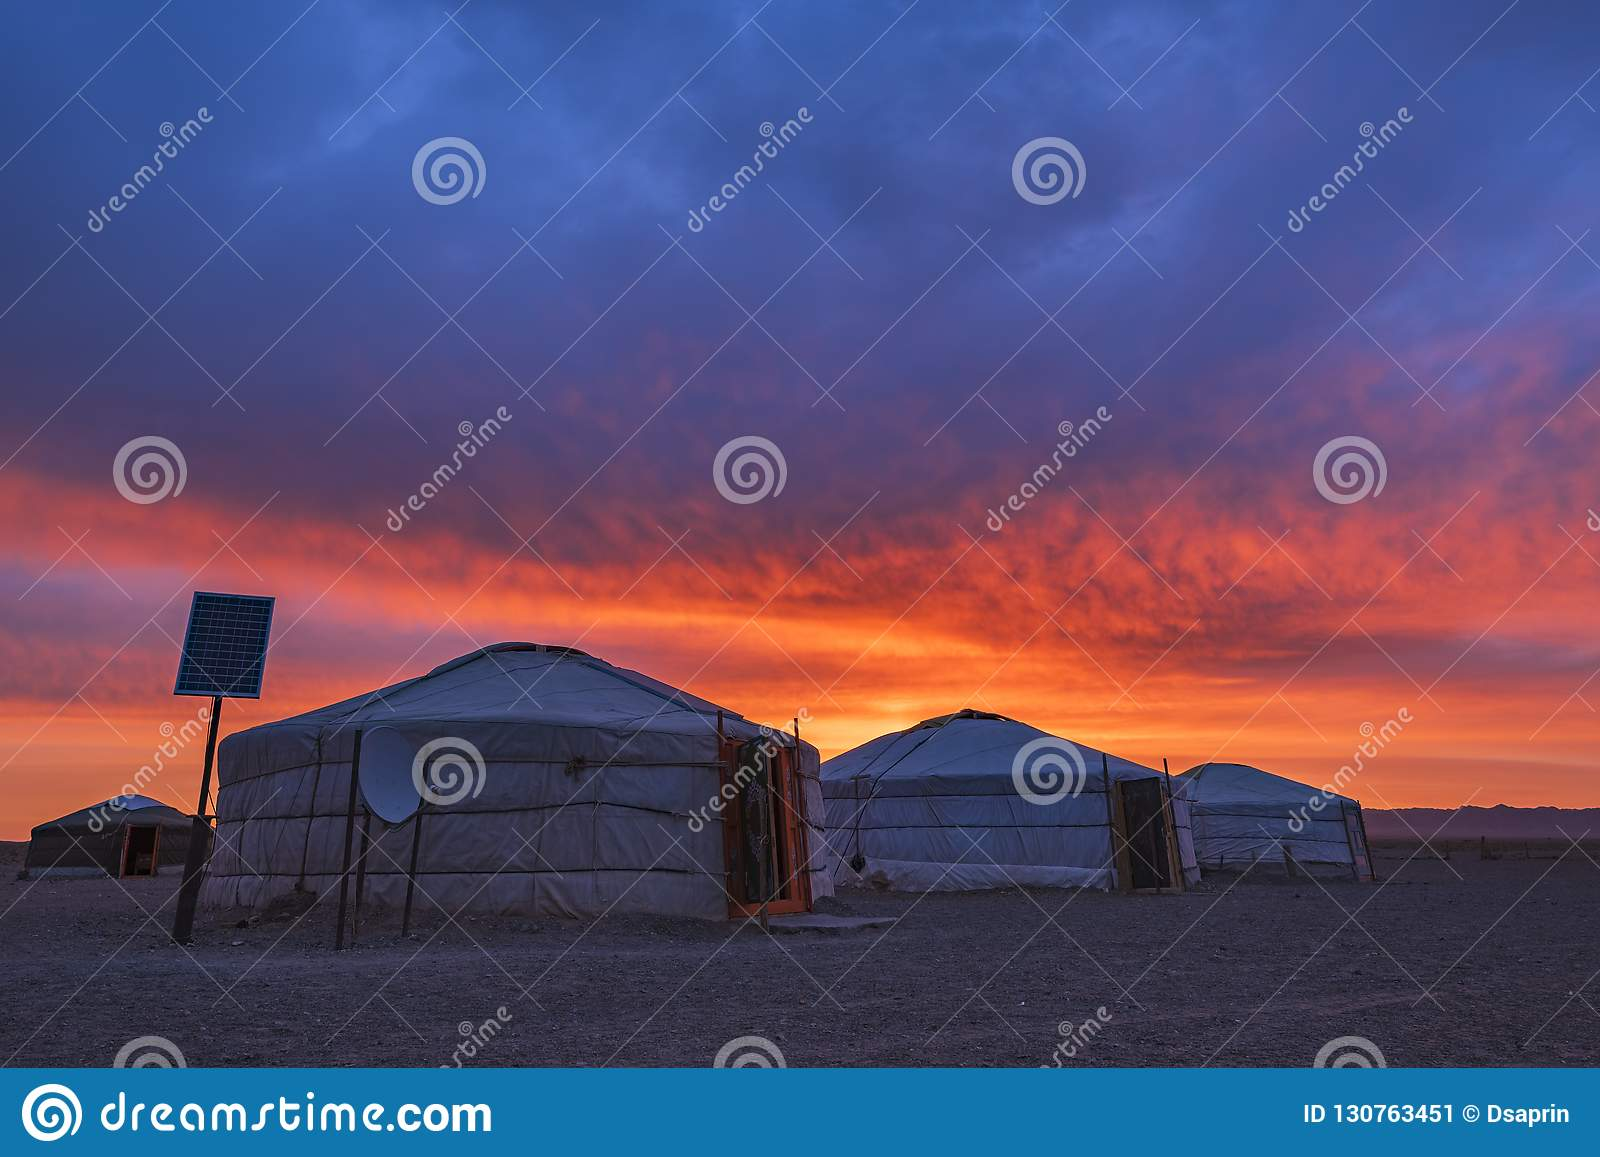 Early Morning View of Traditional Yurt mongolian family in Mongolia landscape Gobi Desert at sunrise.